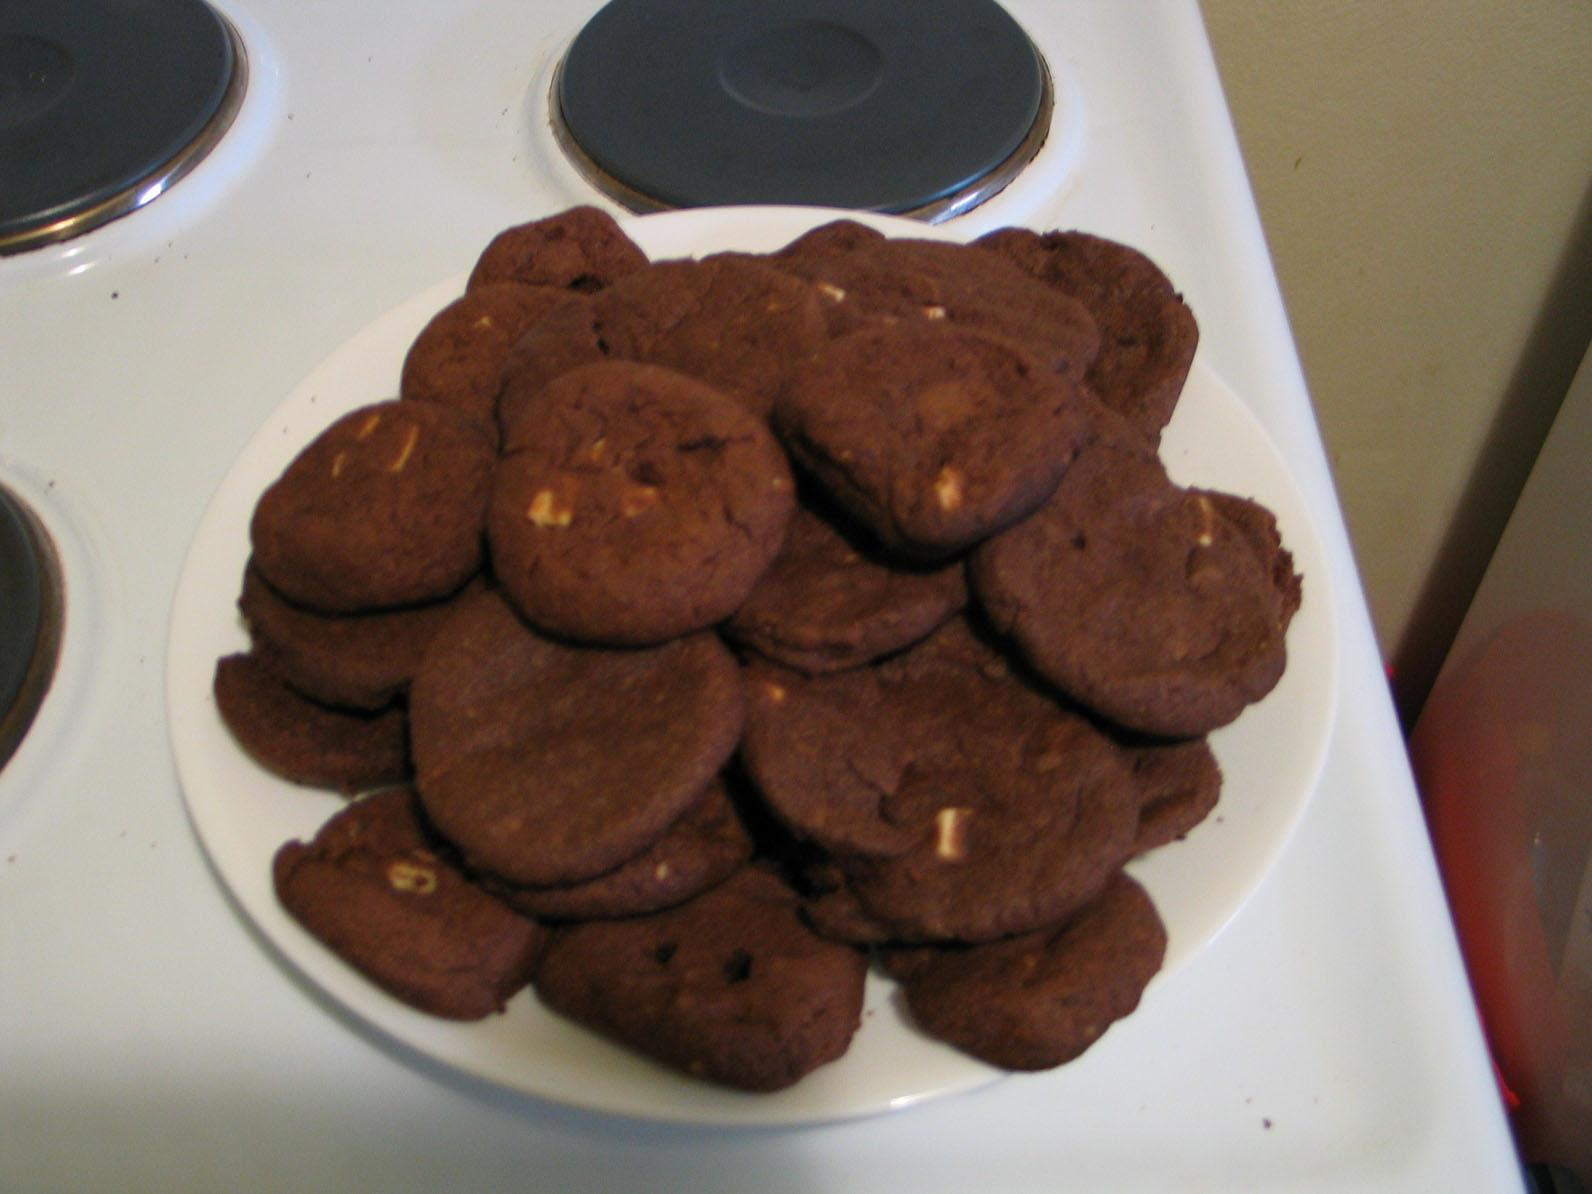 Home-made vegan / gluten-free triple choc cookies